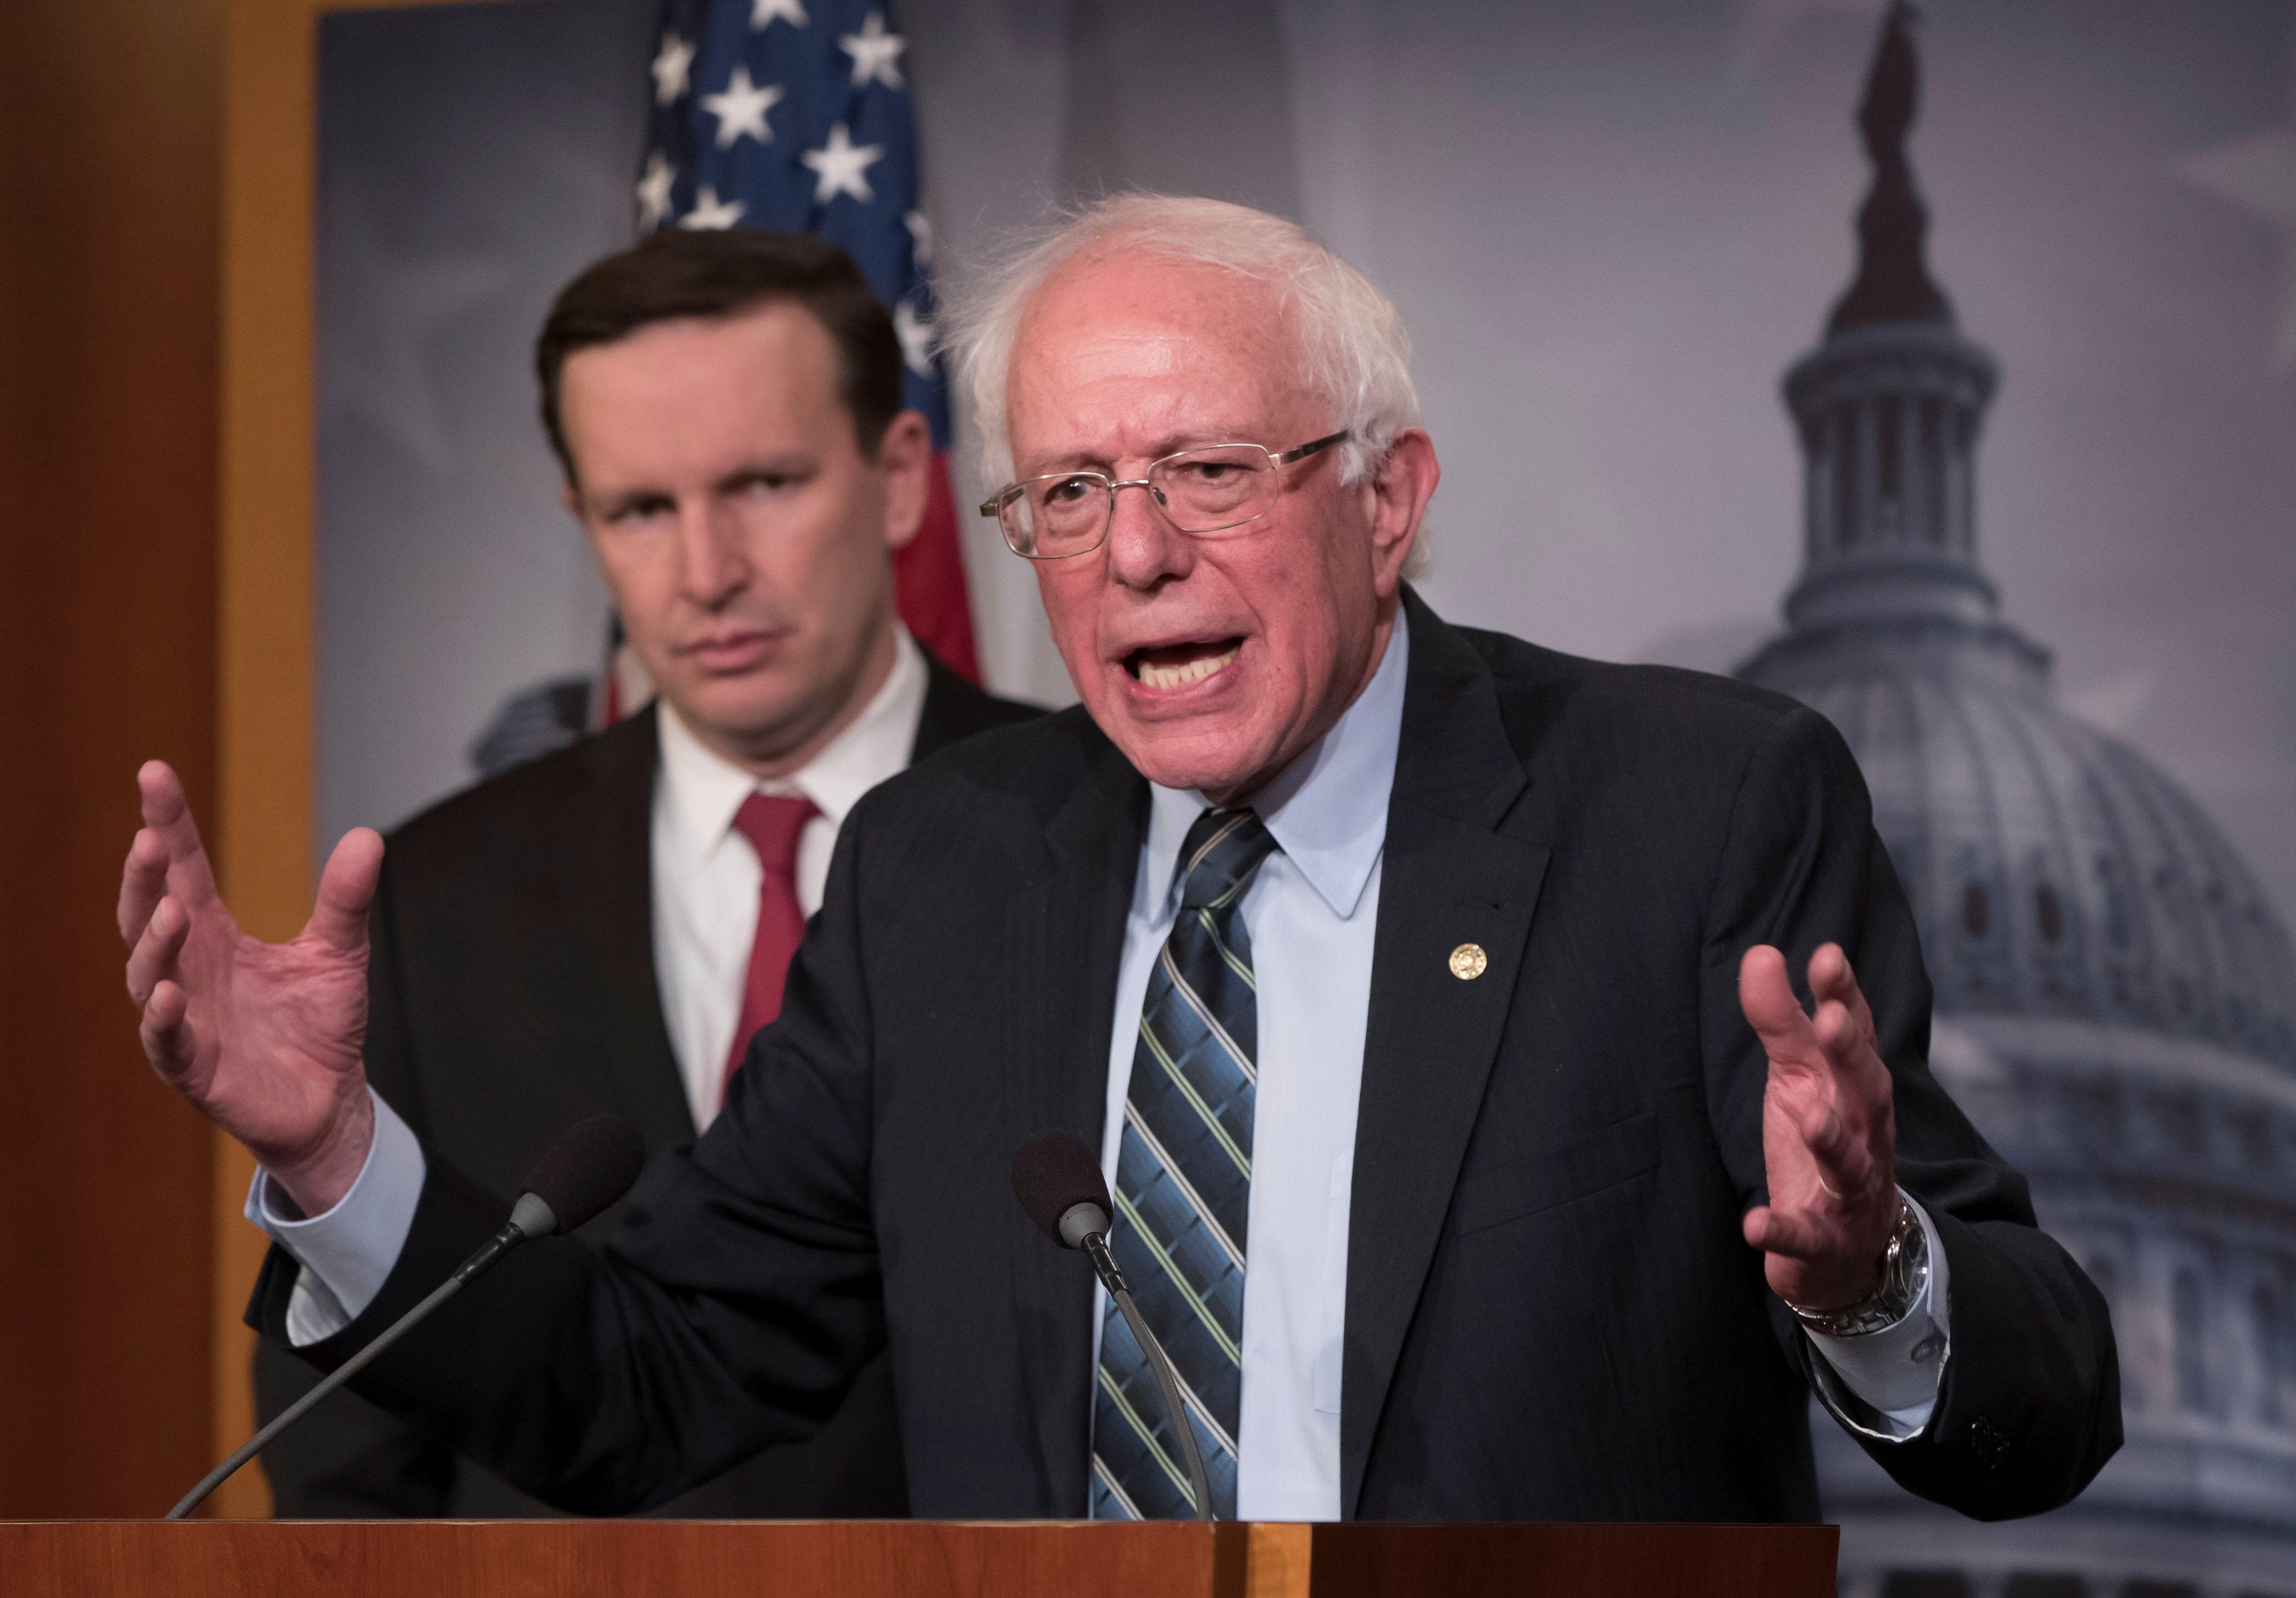 Sen. Bernie Sanders, I-Vt., joined at left by Sen. Chris Murphy, D-Conn., holds a news conference after the Senate passed a resolution he introduced that would pull assistance from the Saudi-led war in Yemen, a measure to rebuke Saudi Arabia after the killing of journalist Jamal Khashoggi, at the Capitol in Washington, Thursday, Dec. 13, 2018. (AP Photo/J. Scott Applewhite)